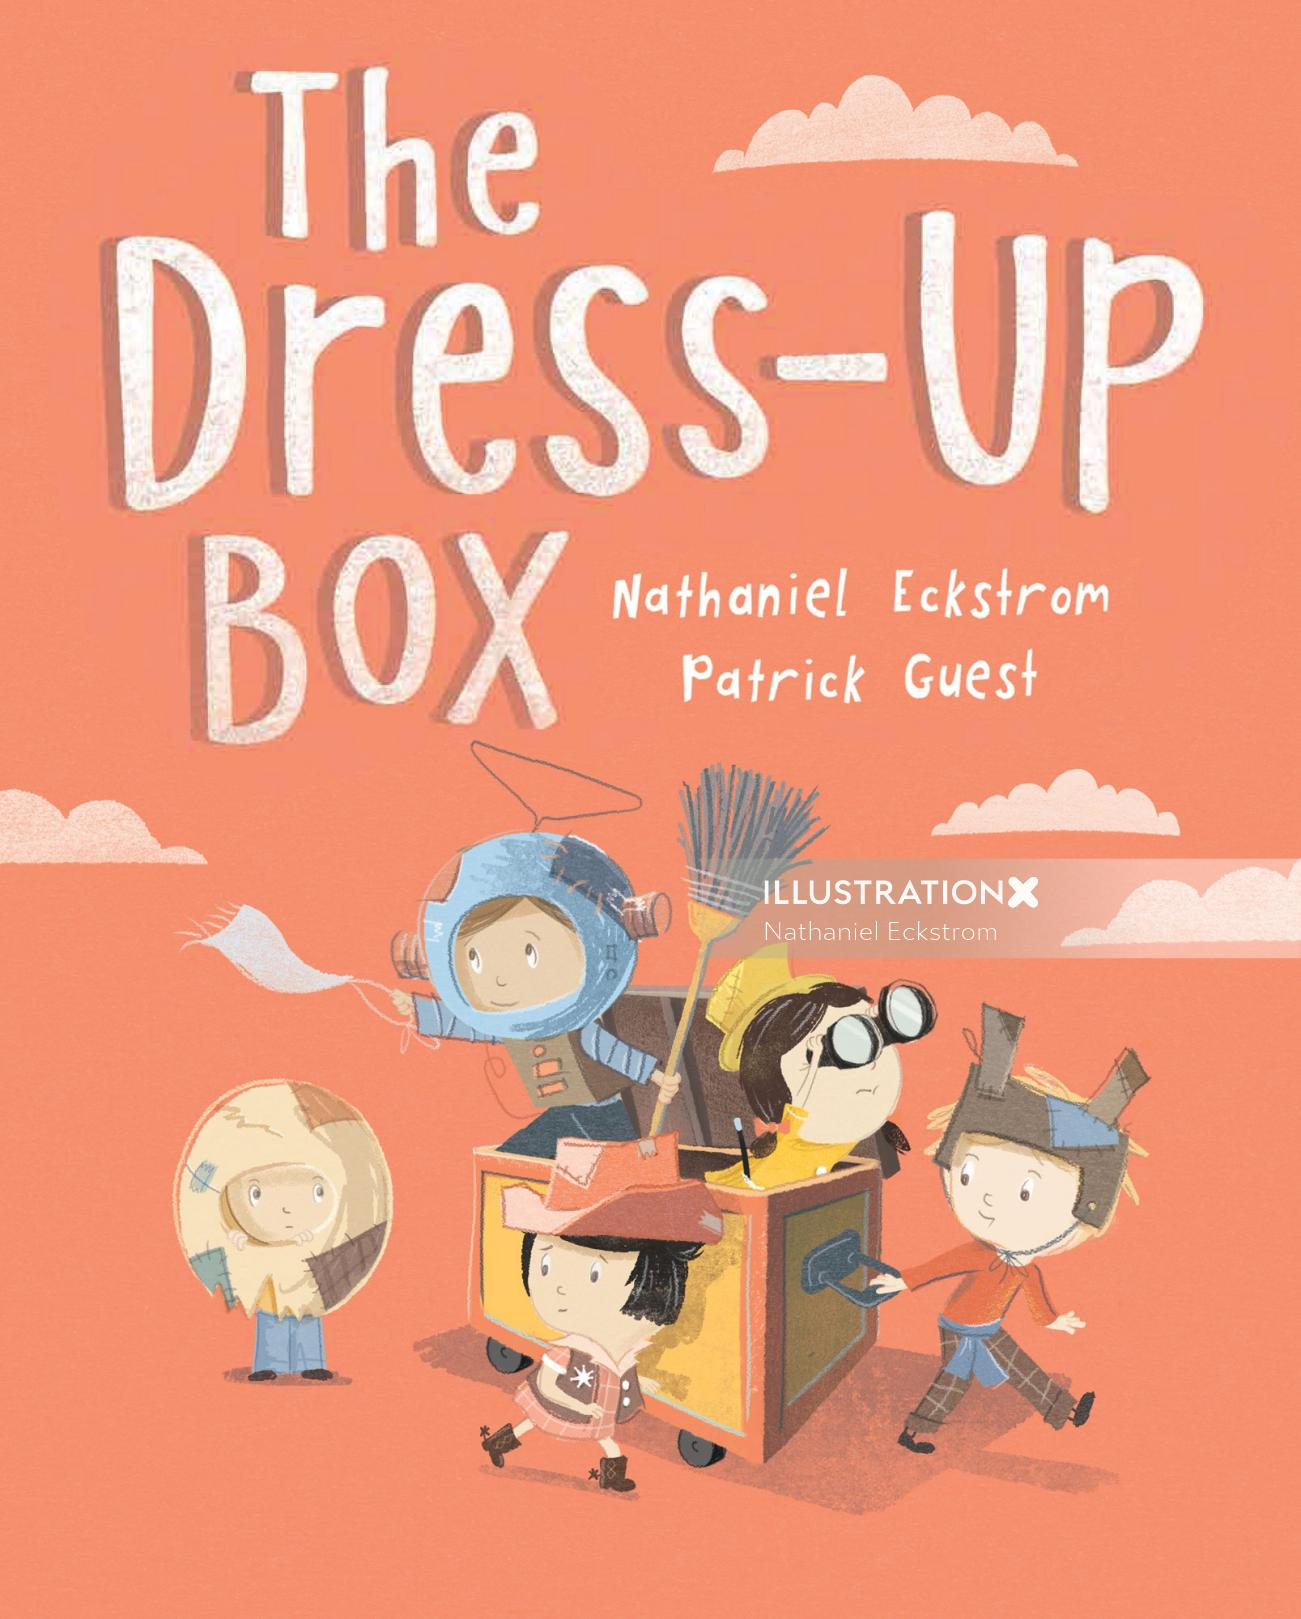 The Dress-Up Box Book Cover Art